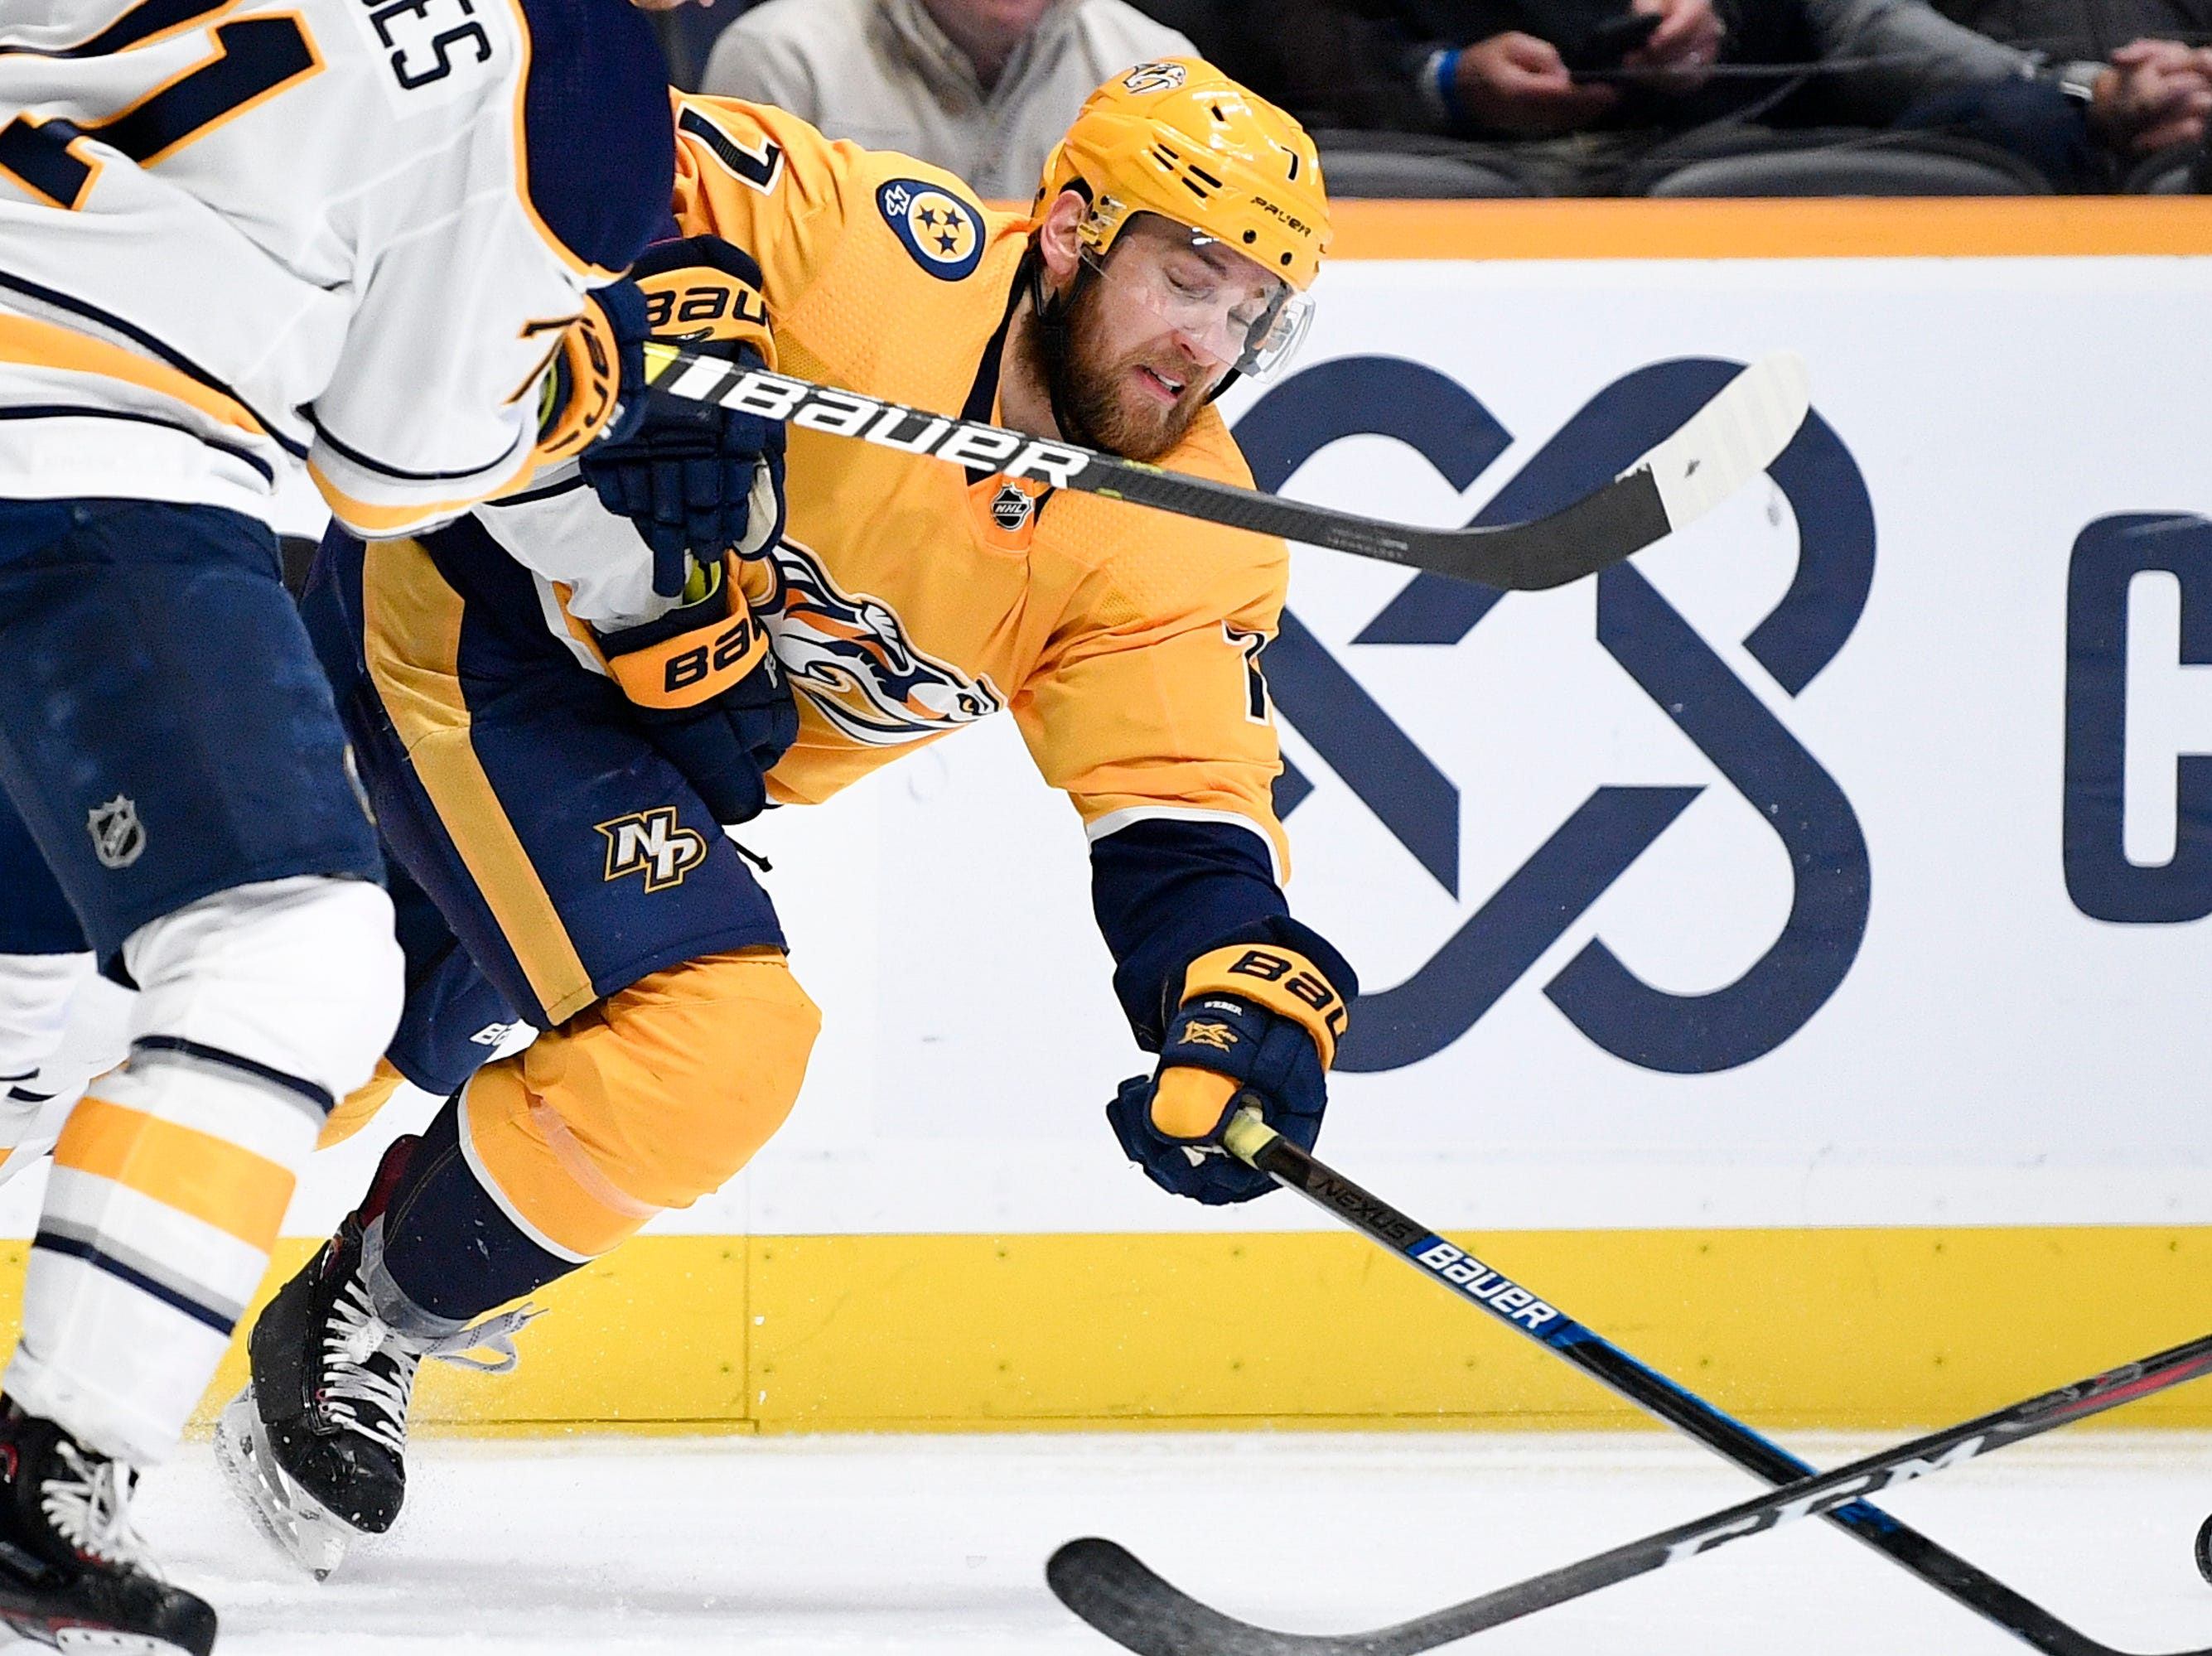 Nashville Predators defenseman Yannick Weber (7) chases the puck against the Buffalo Sabres during the third period at Bridgestone Arena in Nashville, Tenn., Monday, Dec. 3, 2018.